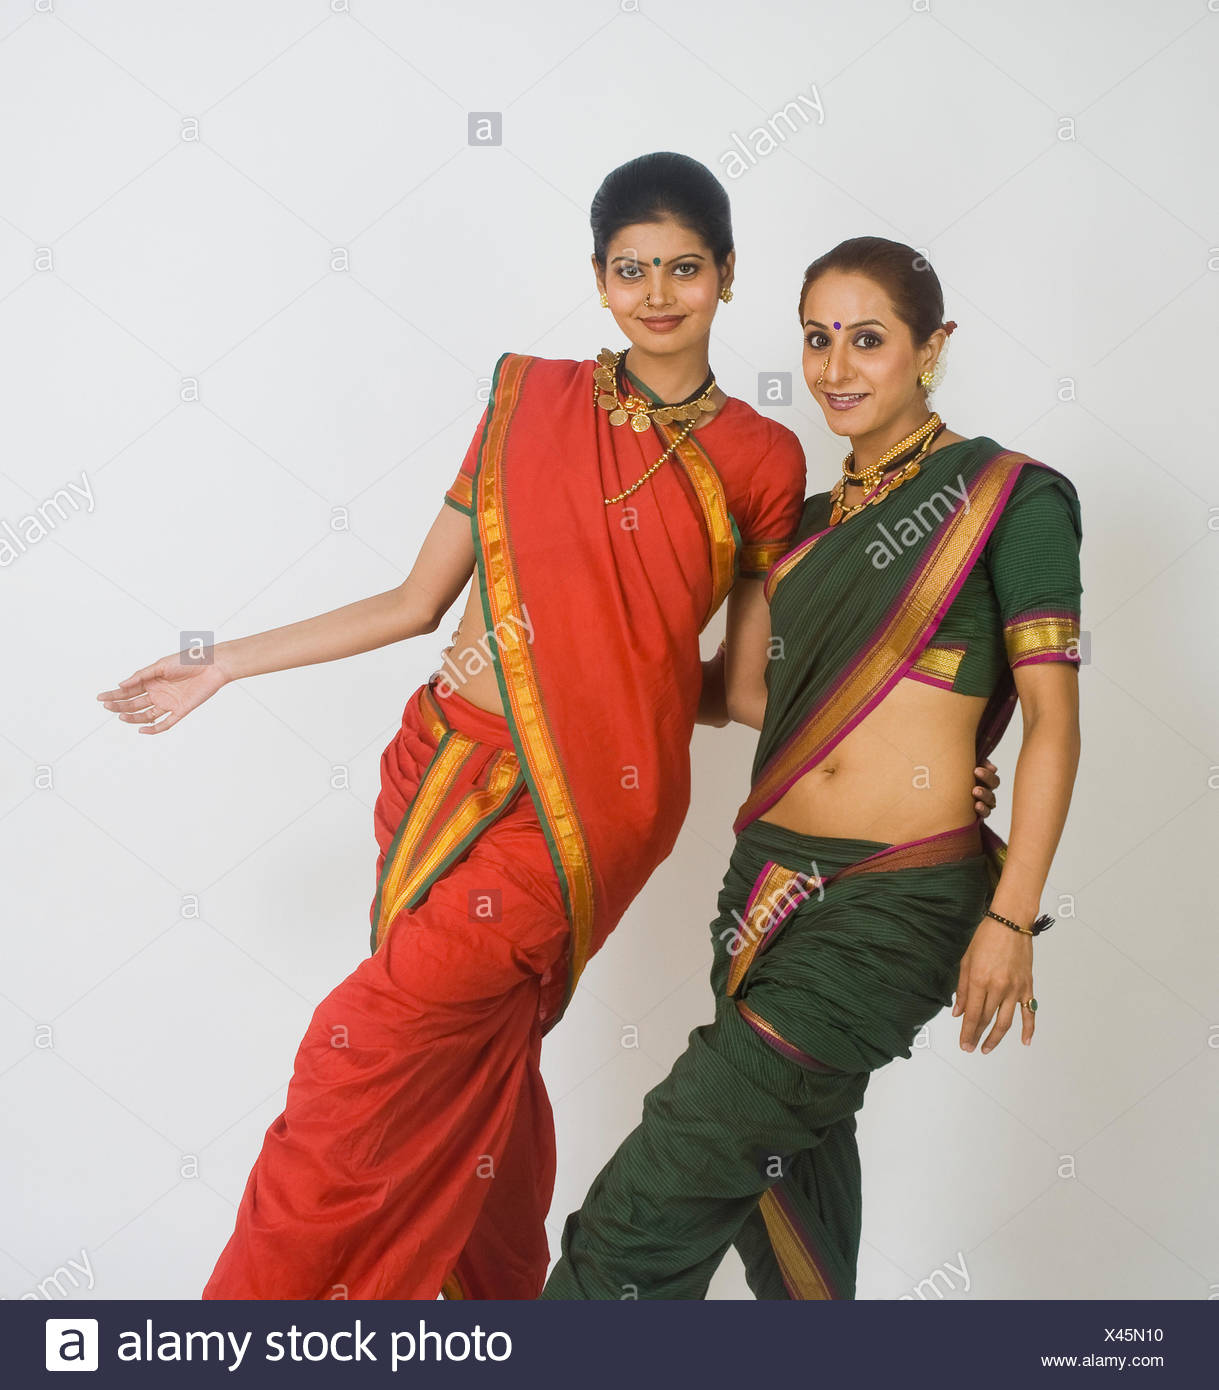 Portrait of two women dancing - Stock Image